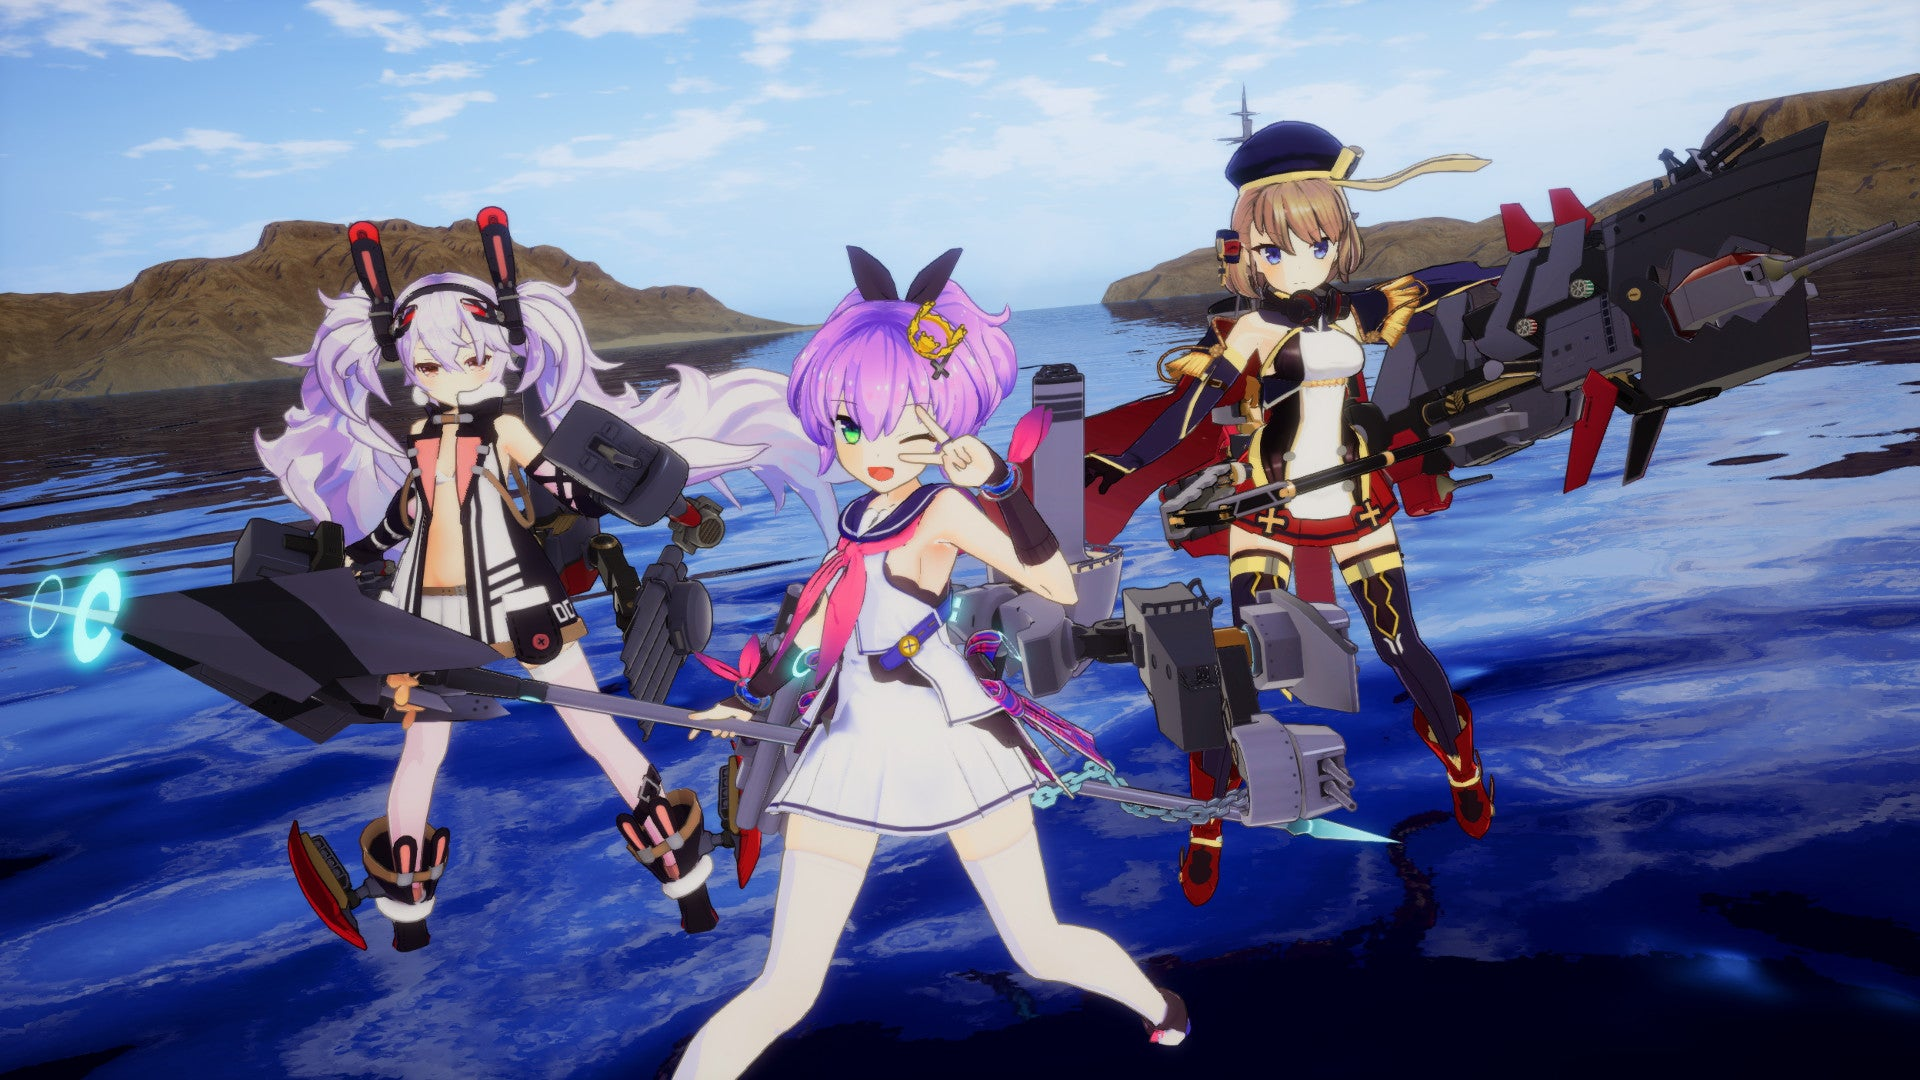 That Anime Women As Battleships Game Comes To PS4 And Steam Next Month